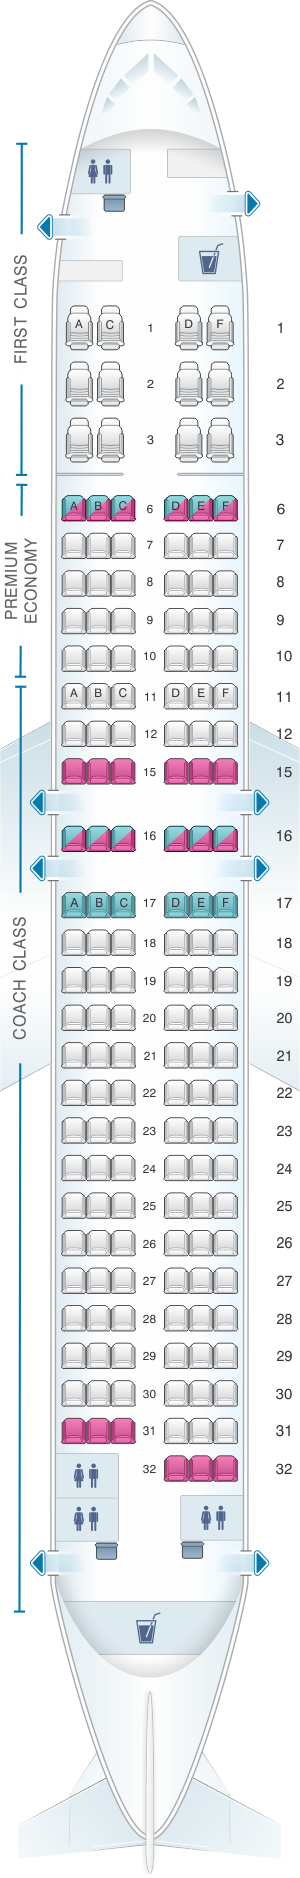 Seat map for Alaska Airlines - Horizon Air Boeing B737 800